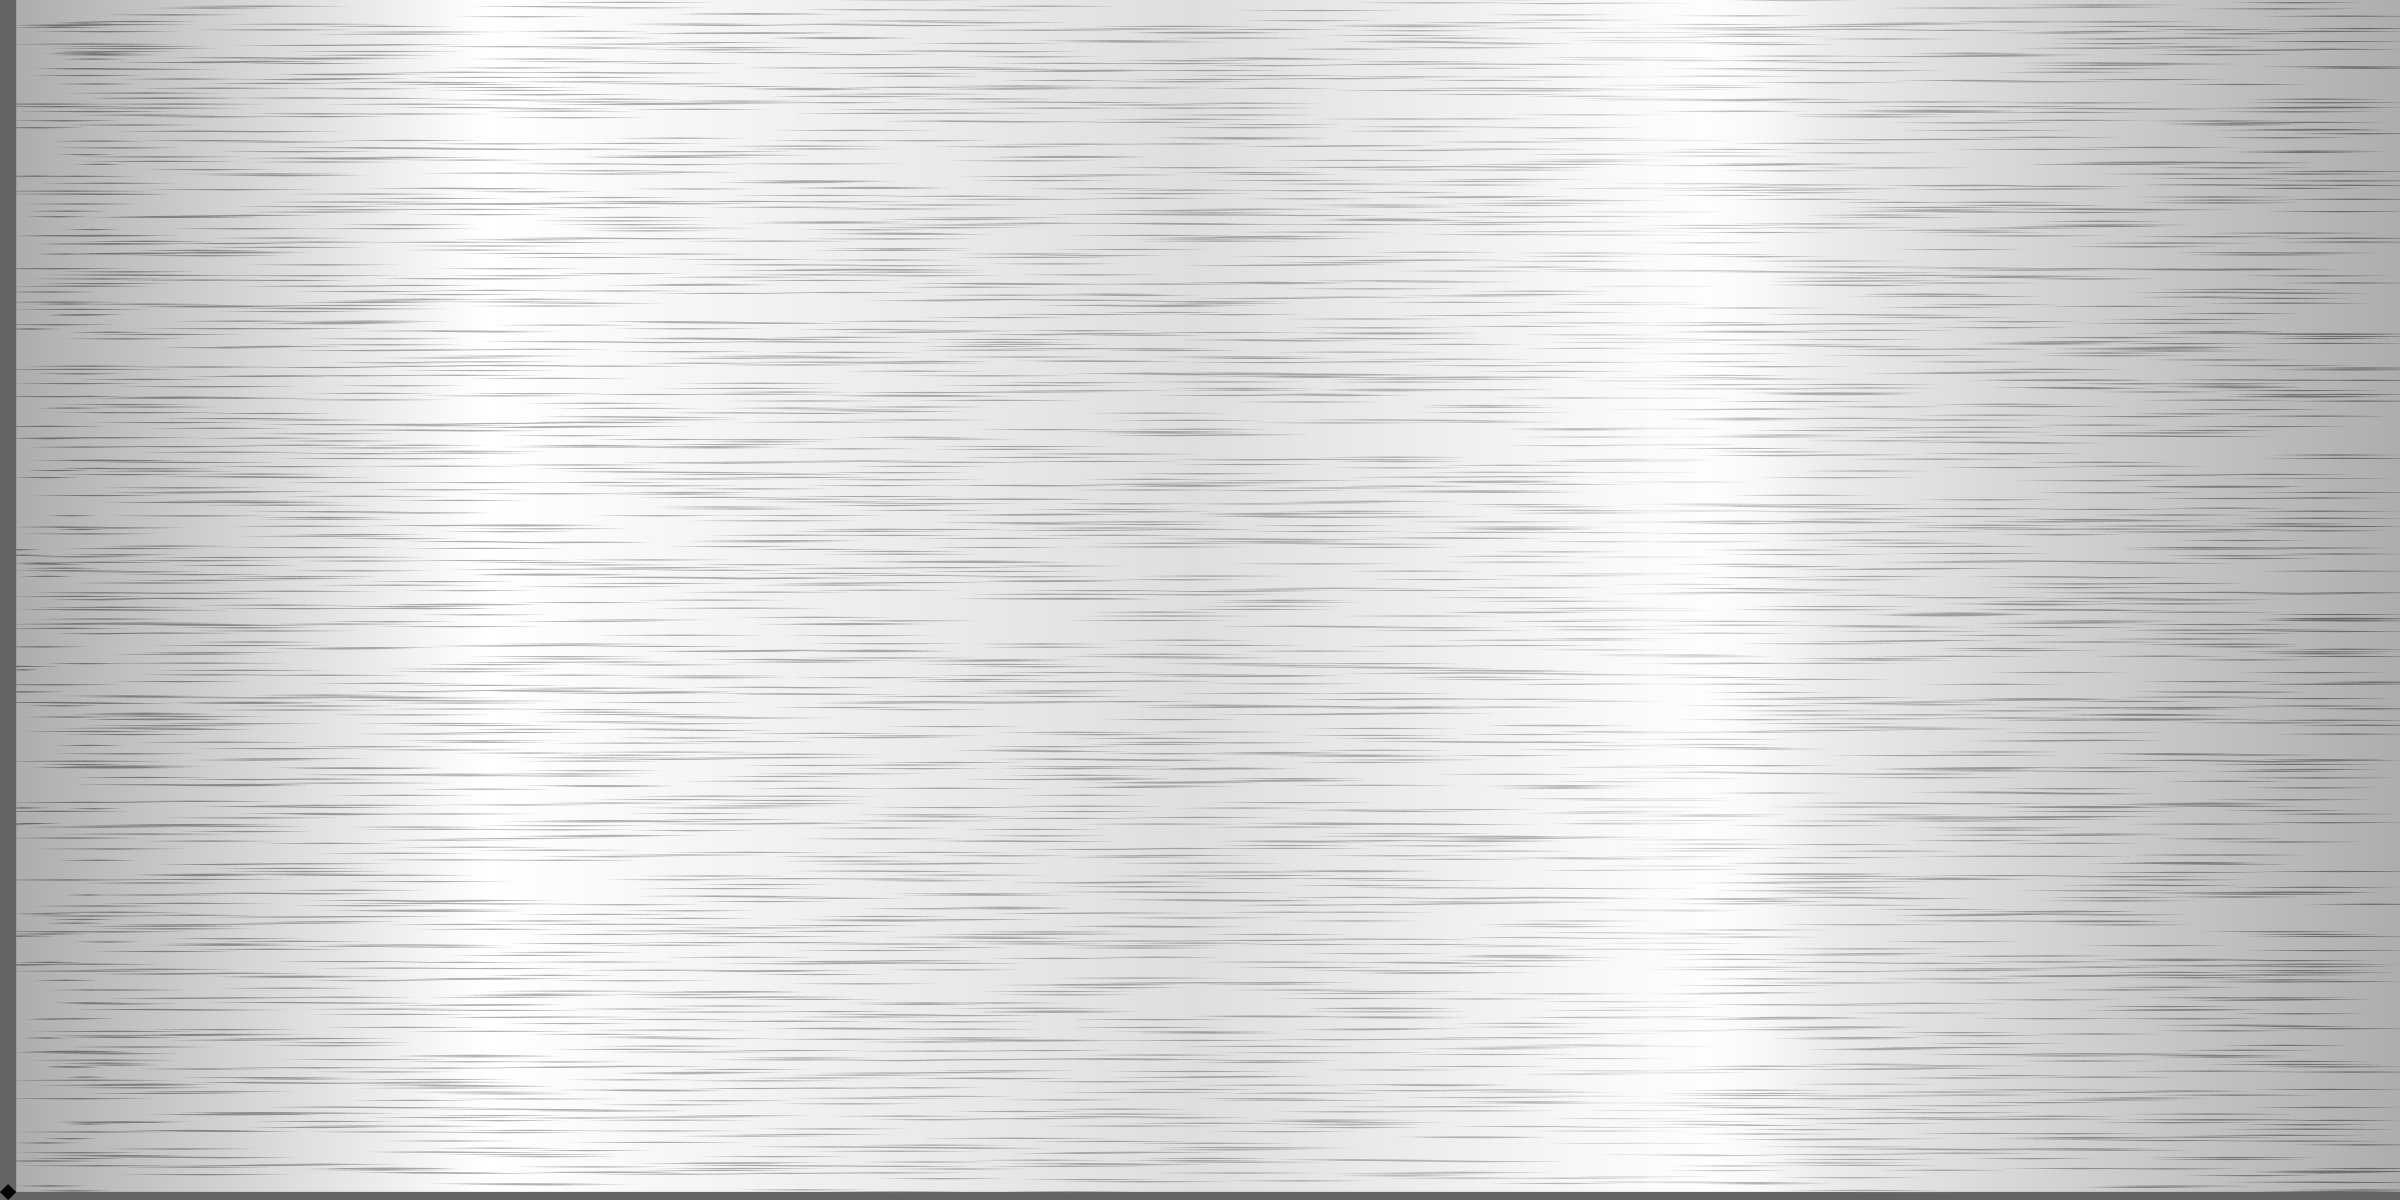 Clipart - brushed metal texture